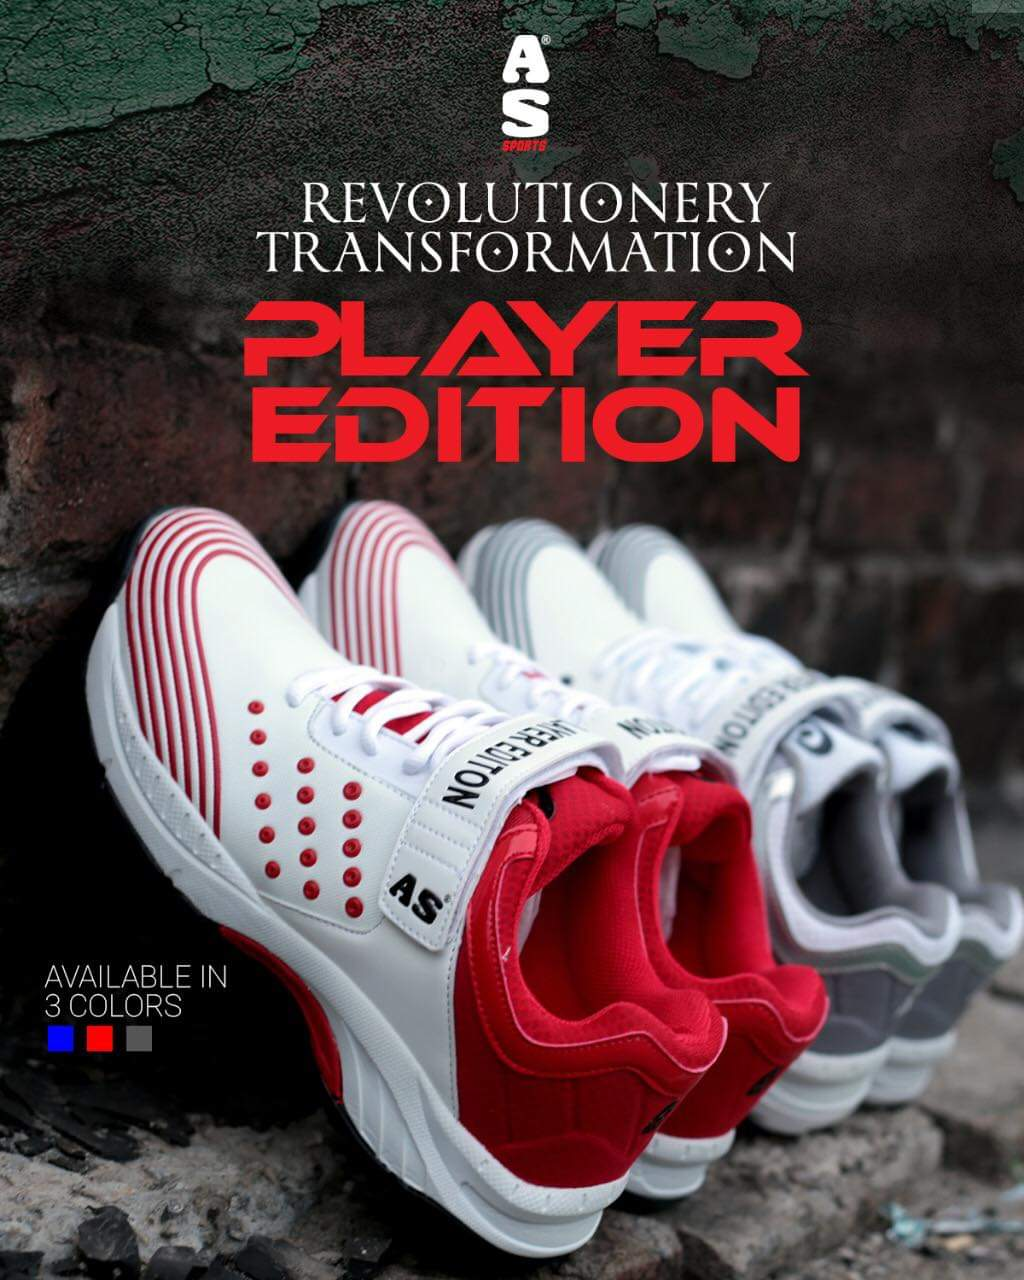 AS Sports Cricket Shoes - Player Edition